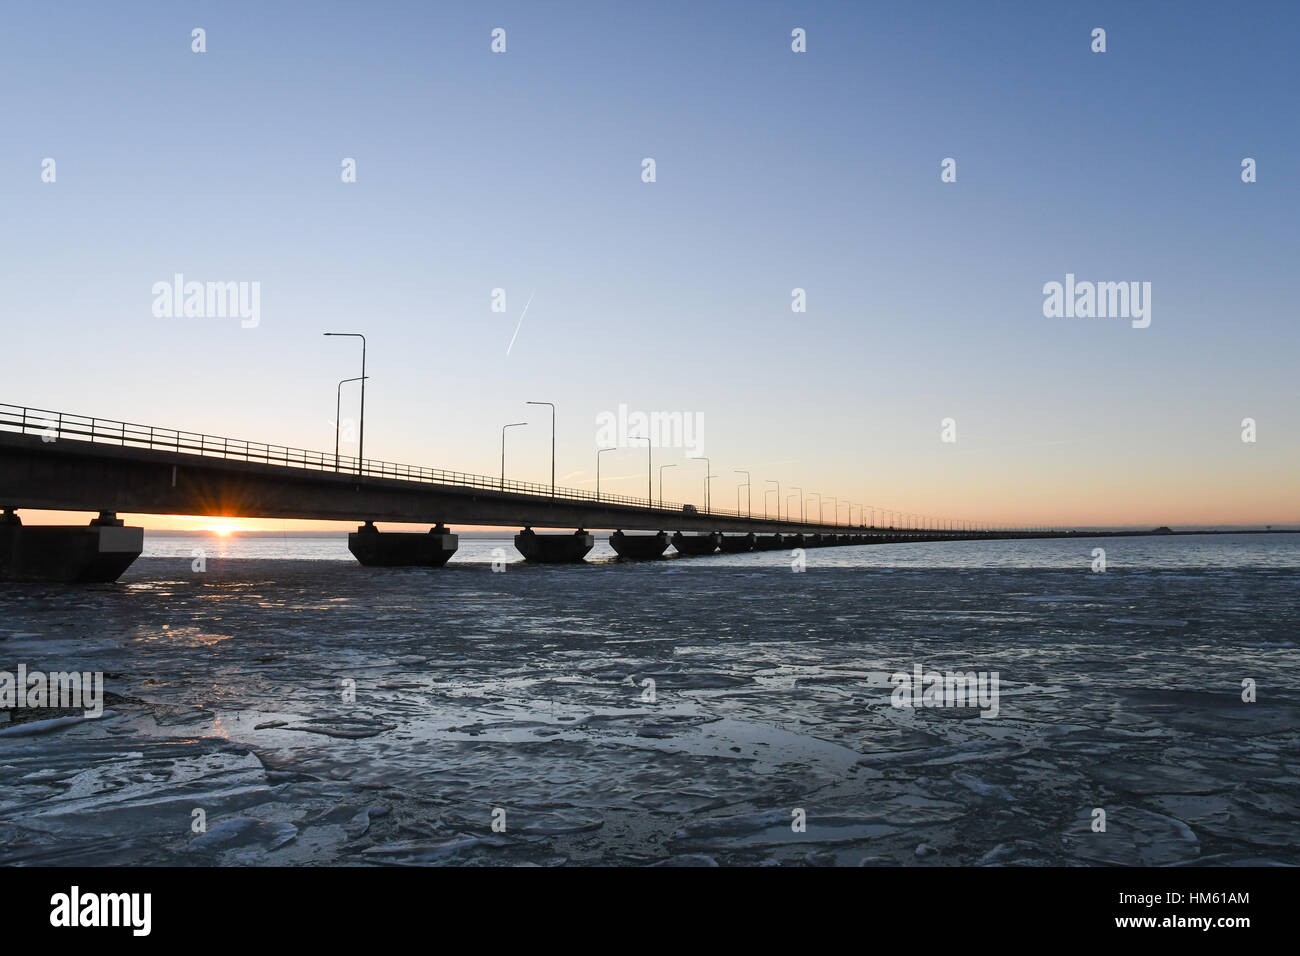 Ice floe and sunset by the Oland bridge connecting the island Oland with mainland Sweden Stock Photo